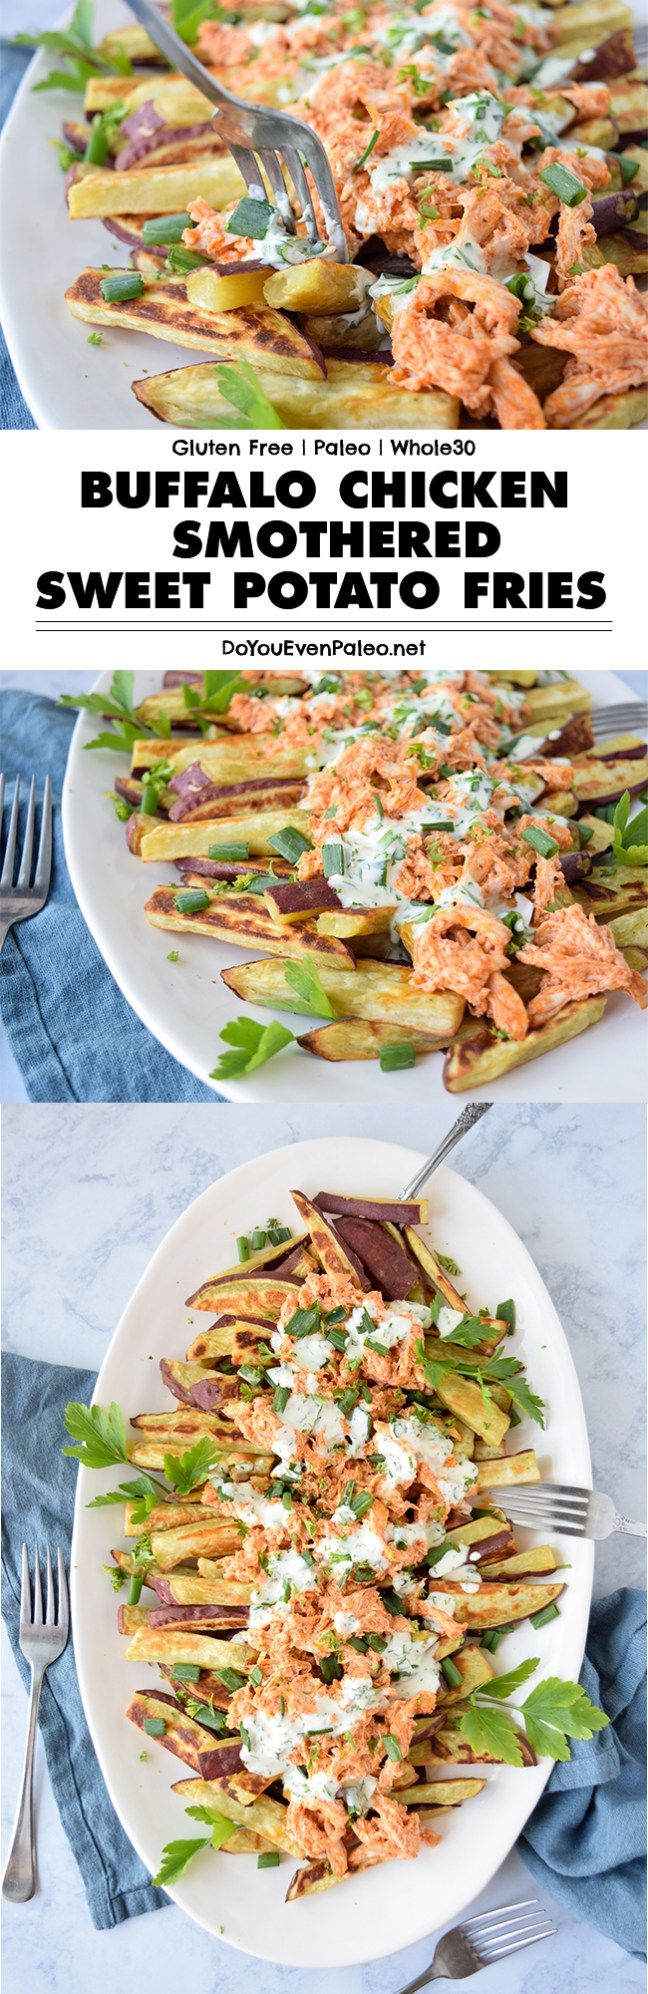 Buffalo Chicken Smothered Sweet Potato Fries - exactly what it sounds like, and it's #paleo and #glutenfree too! | DoYouEvenPaleo.net